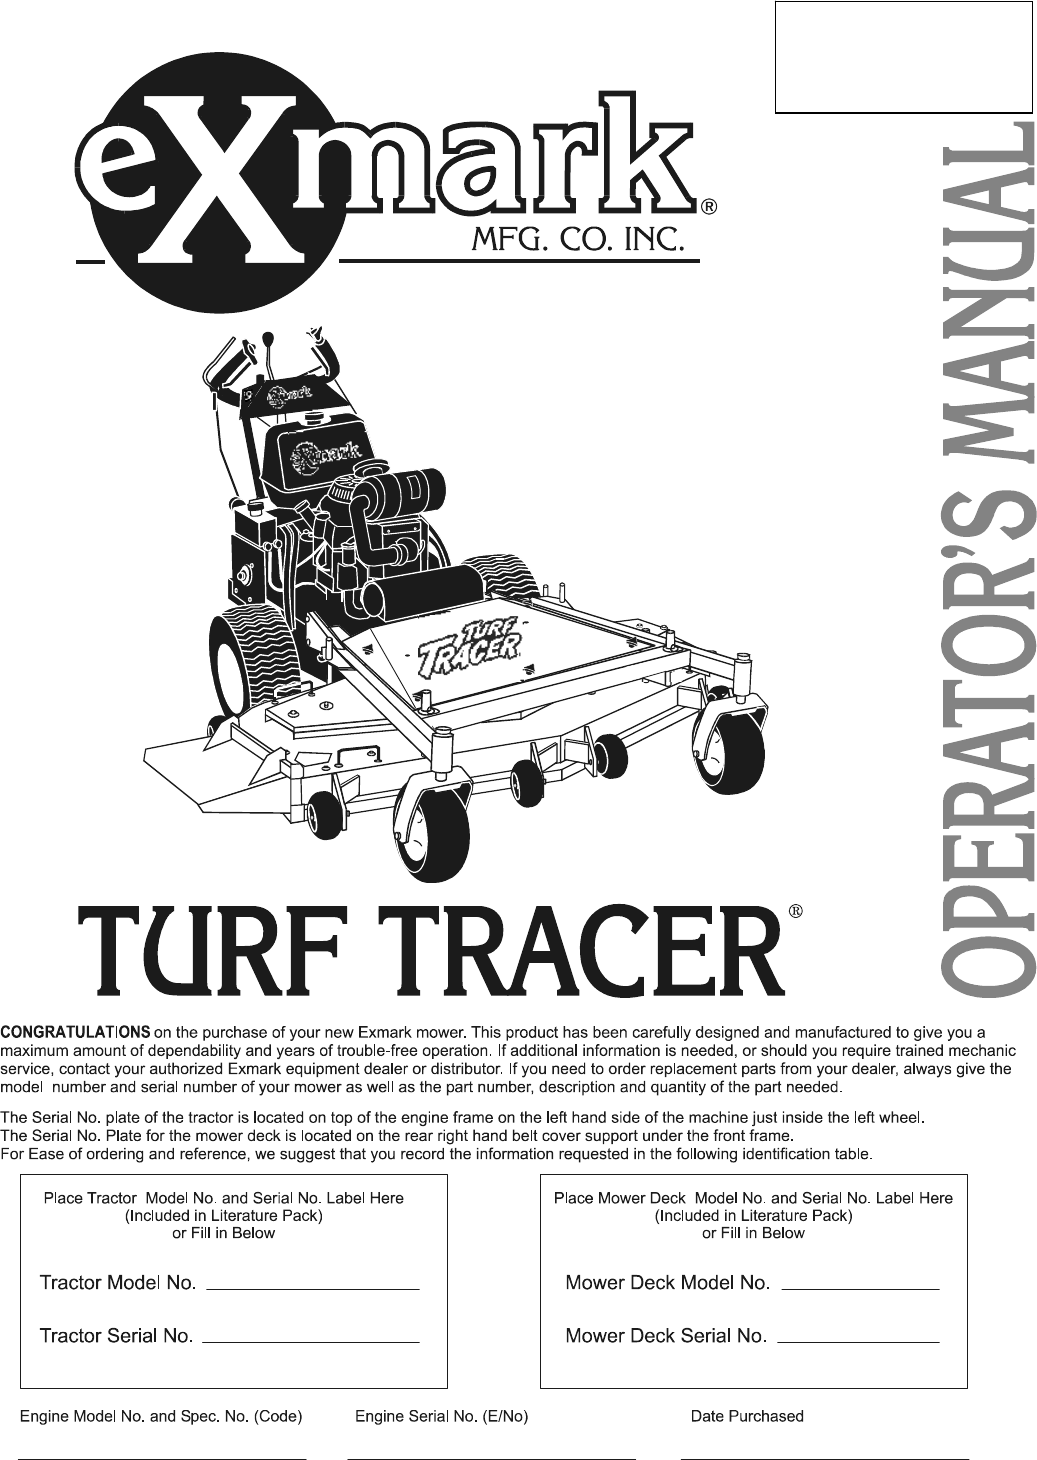 Exmark Lawn Mower Fmd524 User Guide